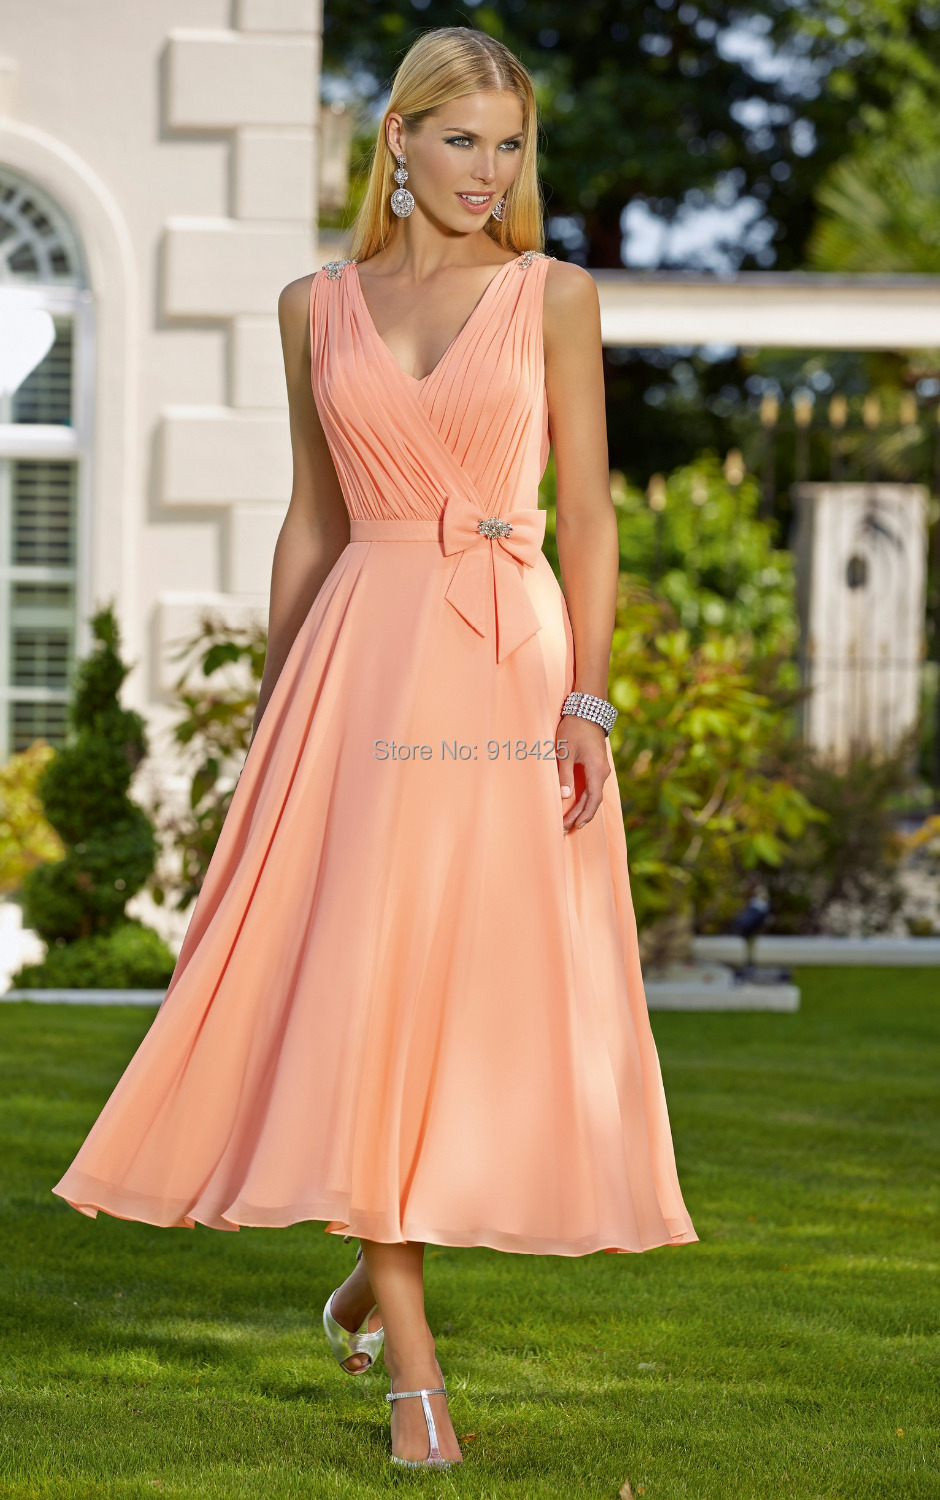 5b4f143b81d4 New Arrival Elegant Chiffon Tea Length Peach Color Bridesmaid Dresses V Neck  A Line Pleated Country Style MG283